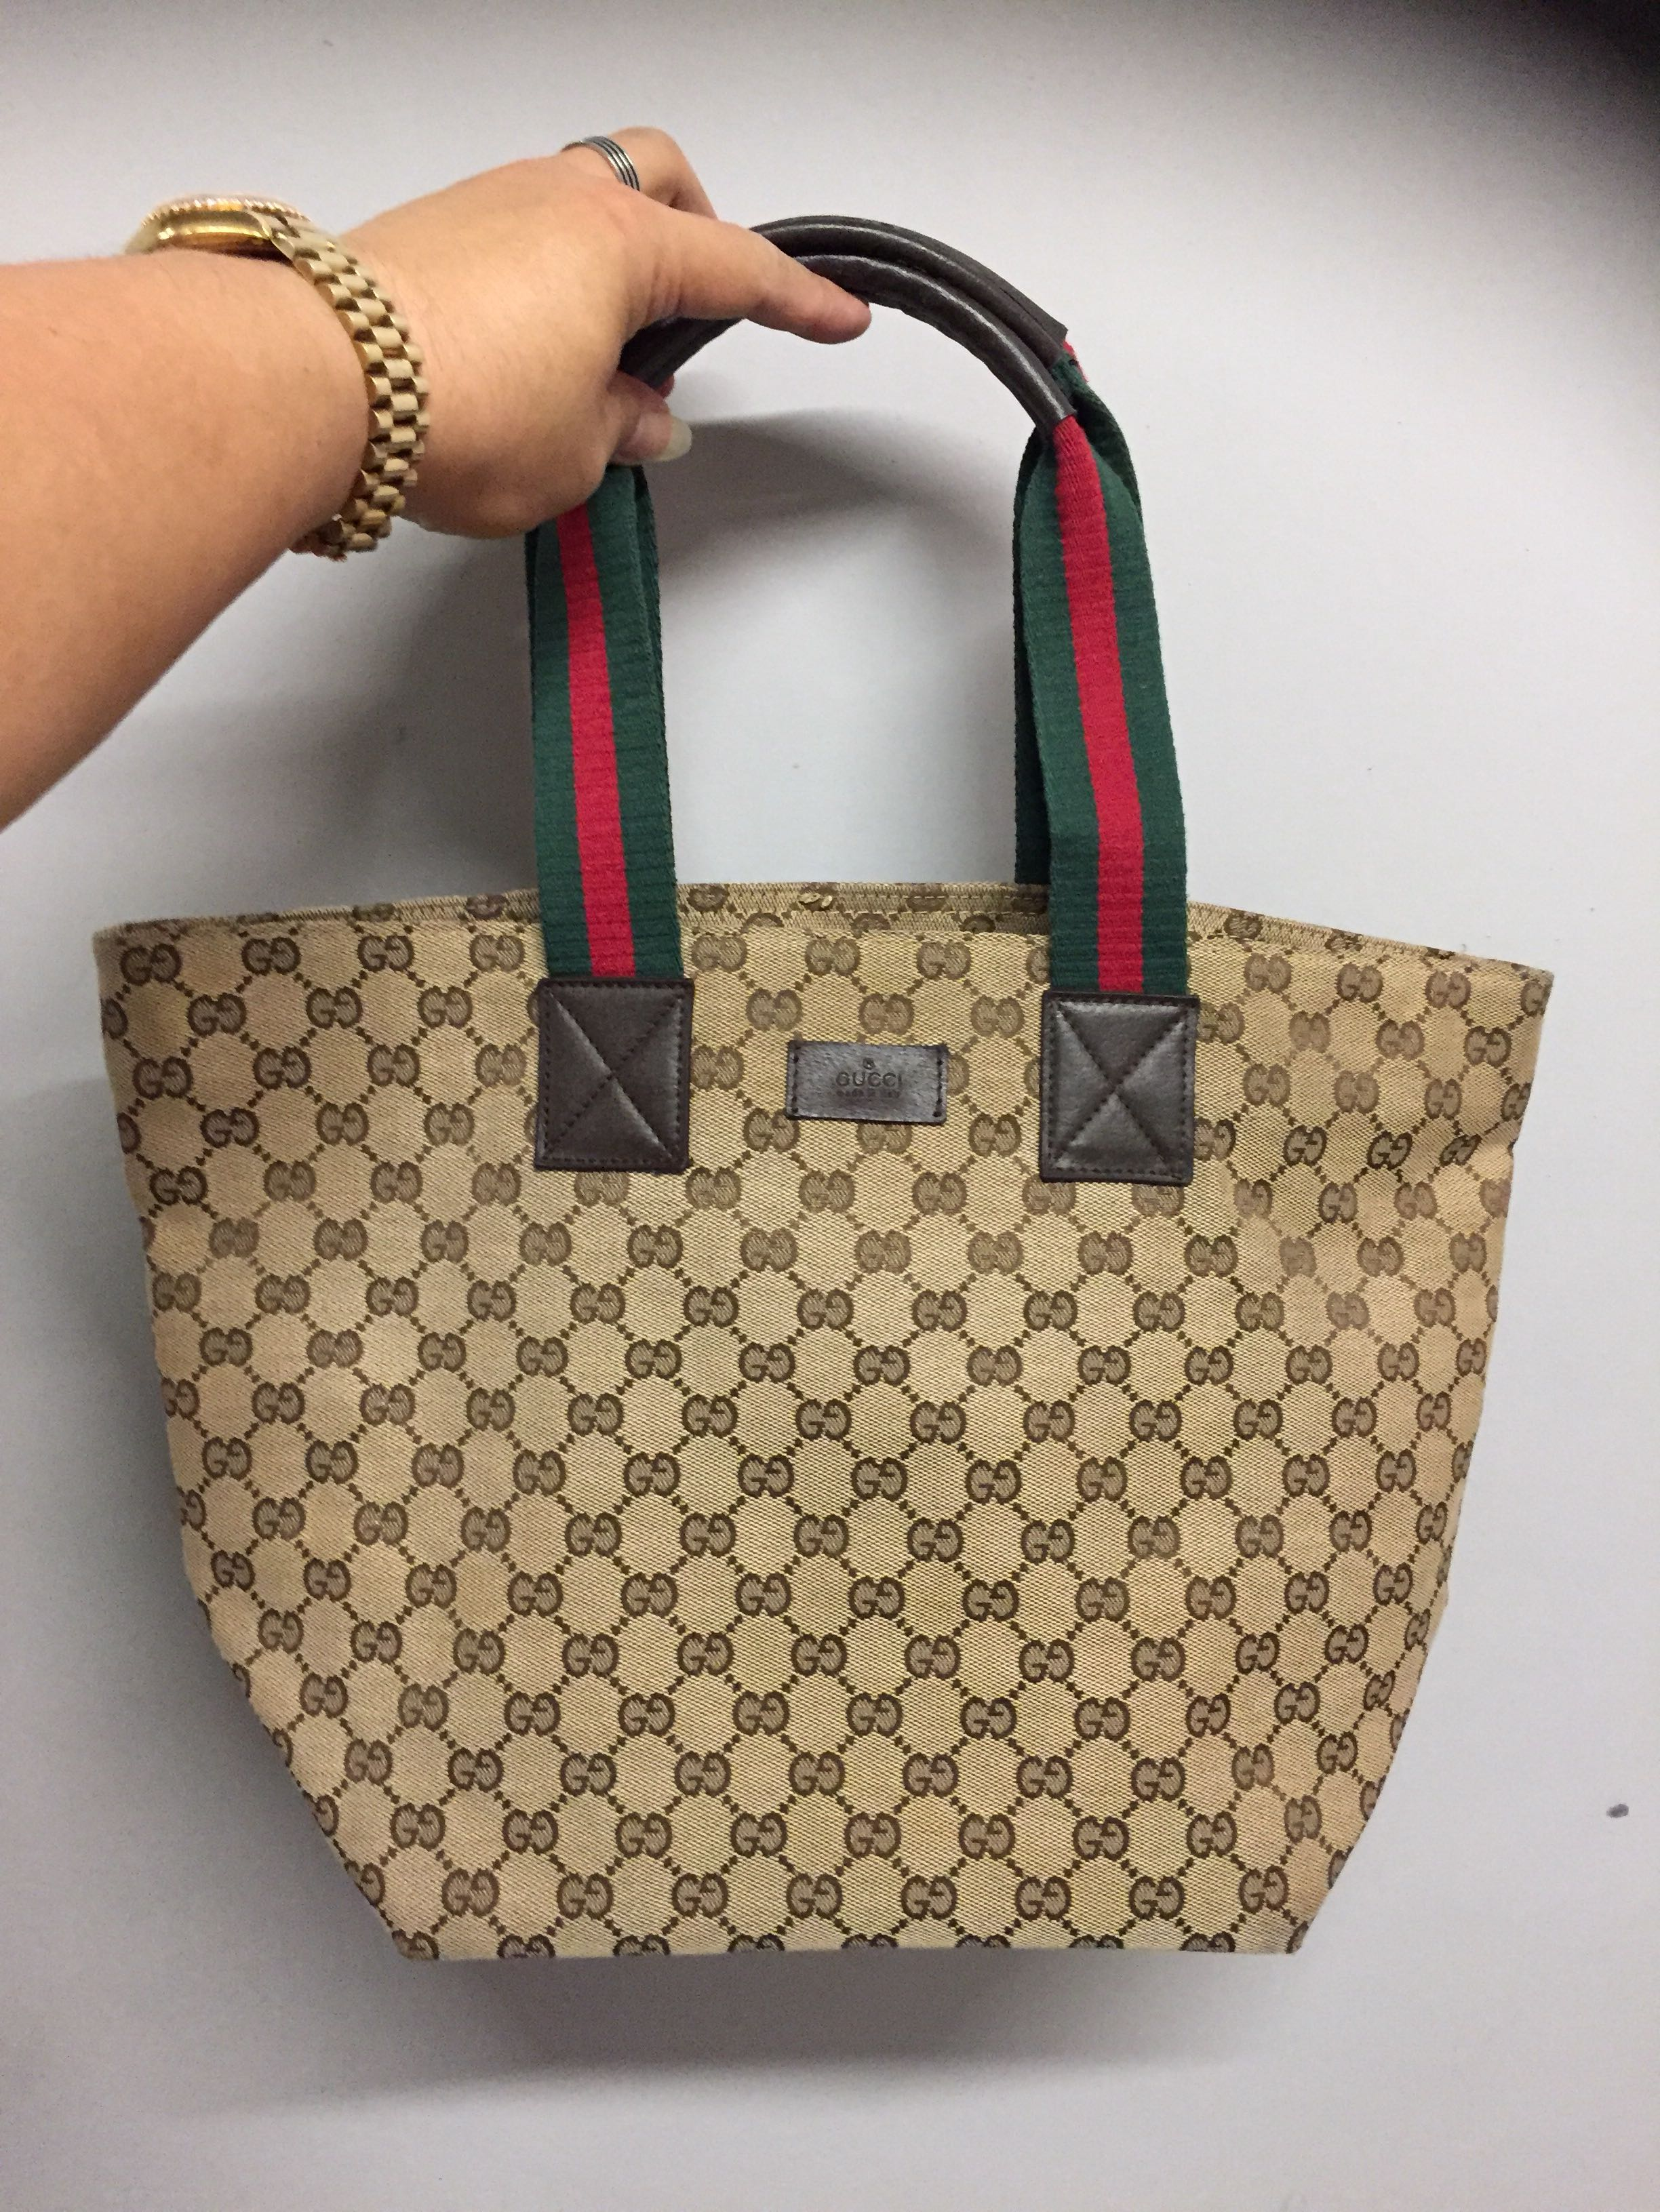 686ba16bbe7 Used Gucci Tote Bag for Sale